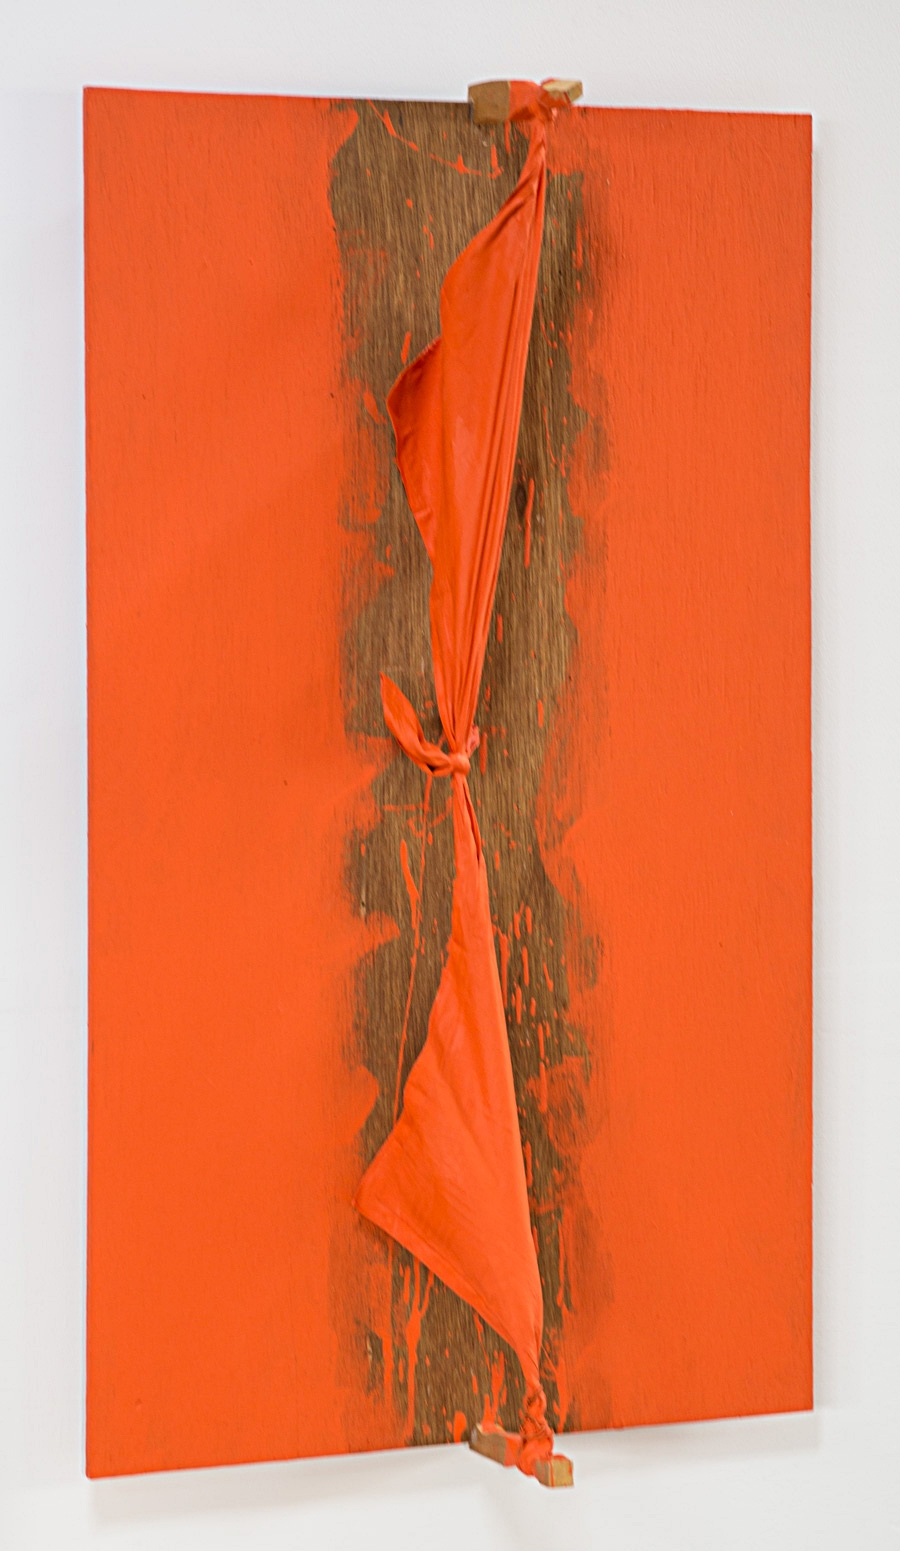 Rising Space at the Edges , 1992 端の界立 ( Tan no Kairitsu ) Wood, cloth, acrylic paint 39 3/8 x 22 7/8 x 7 5/8 inches 100 x 58 x 19.5 centimeters